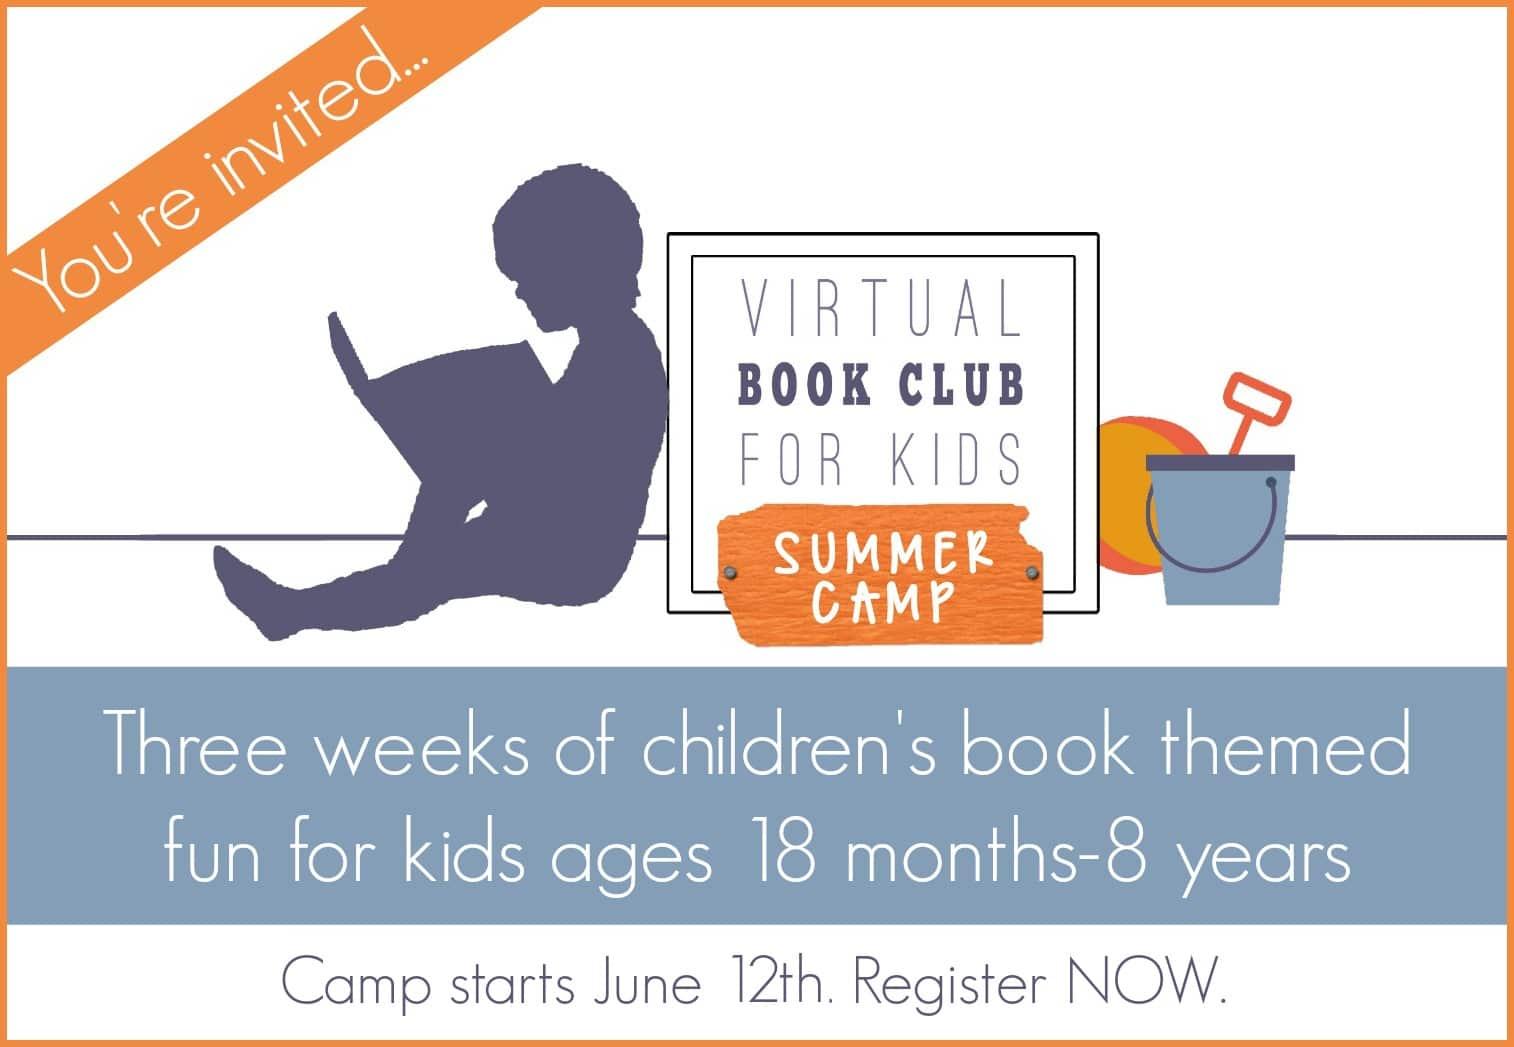 Summer Camp for Kids at home for ages 18 months to 8 years old